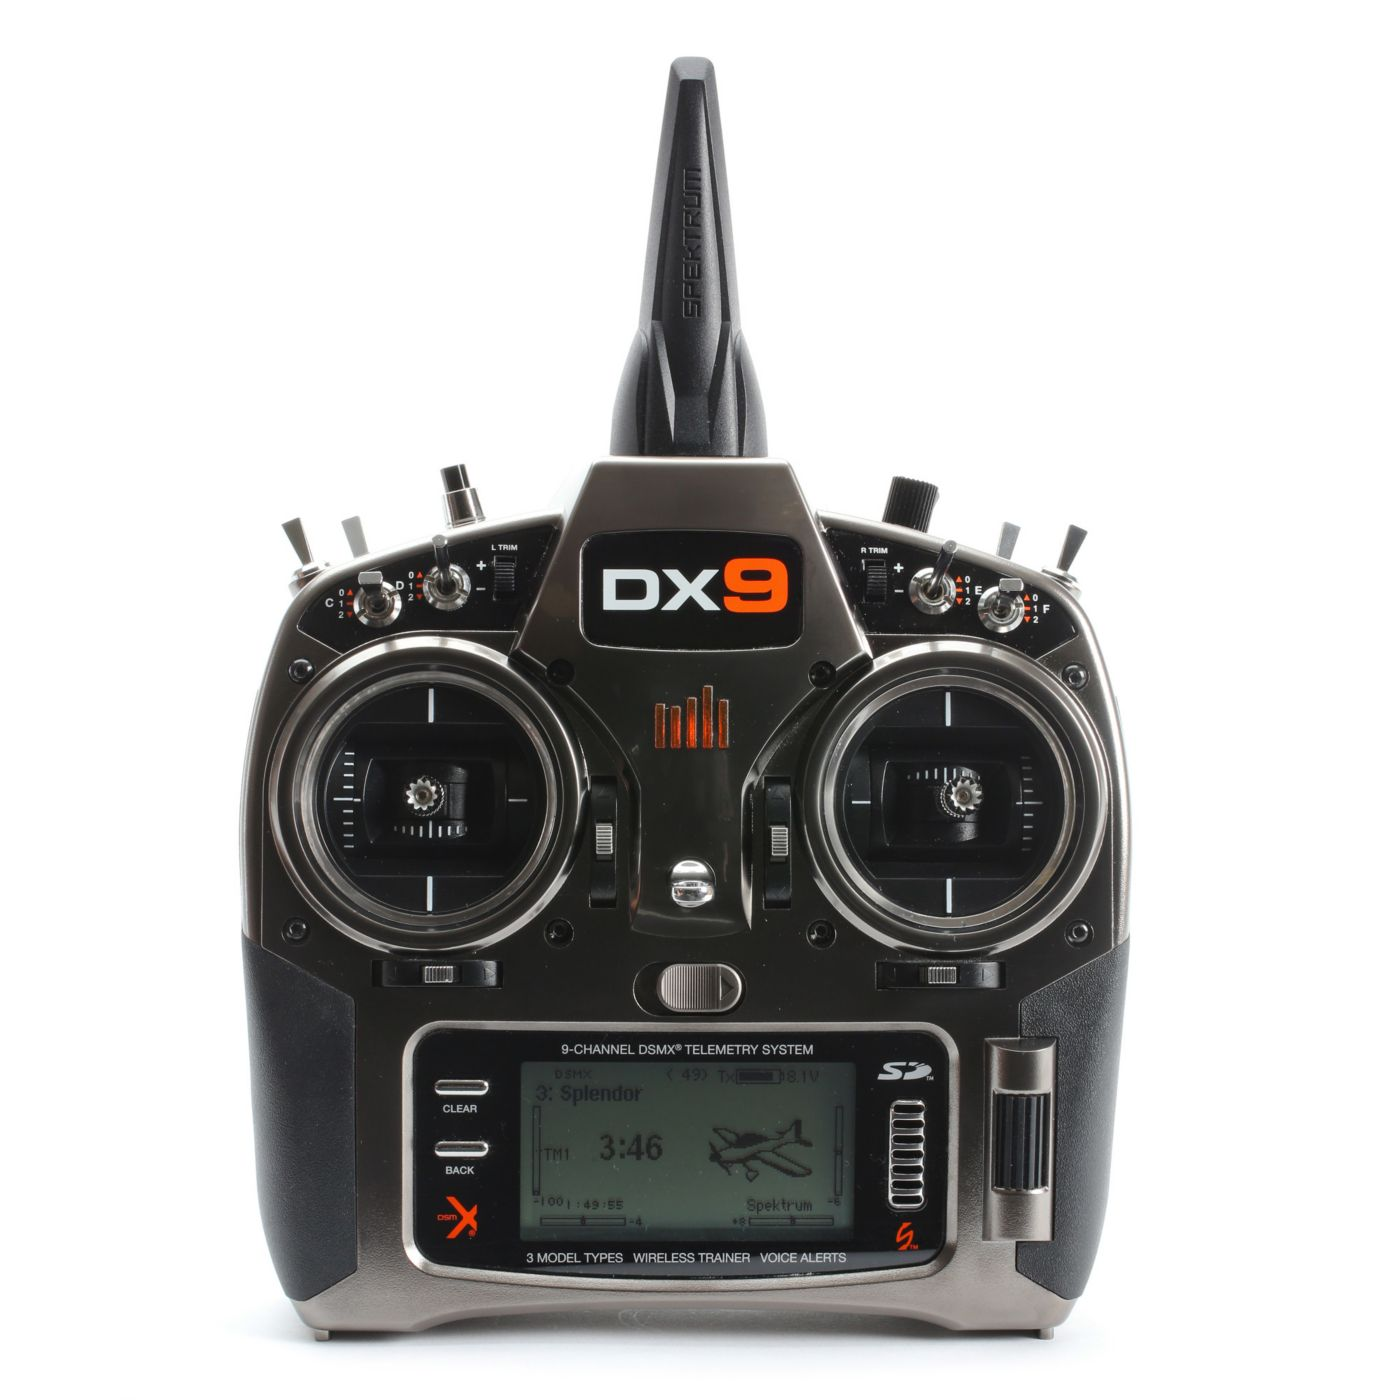 Spektrum Dx9 9 Channel Dsmx Programmable Radio Transmitter For Rc The Wireless Remote Control Equipment Is Delay Time Mode You Only